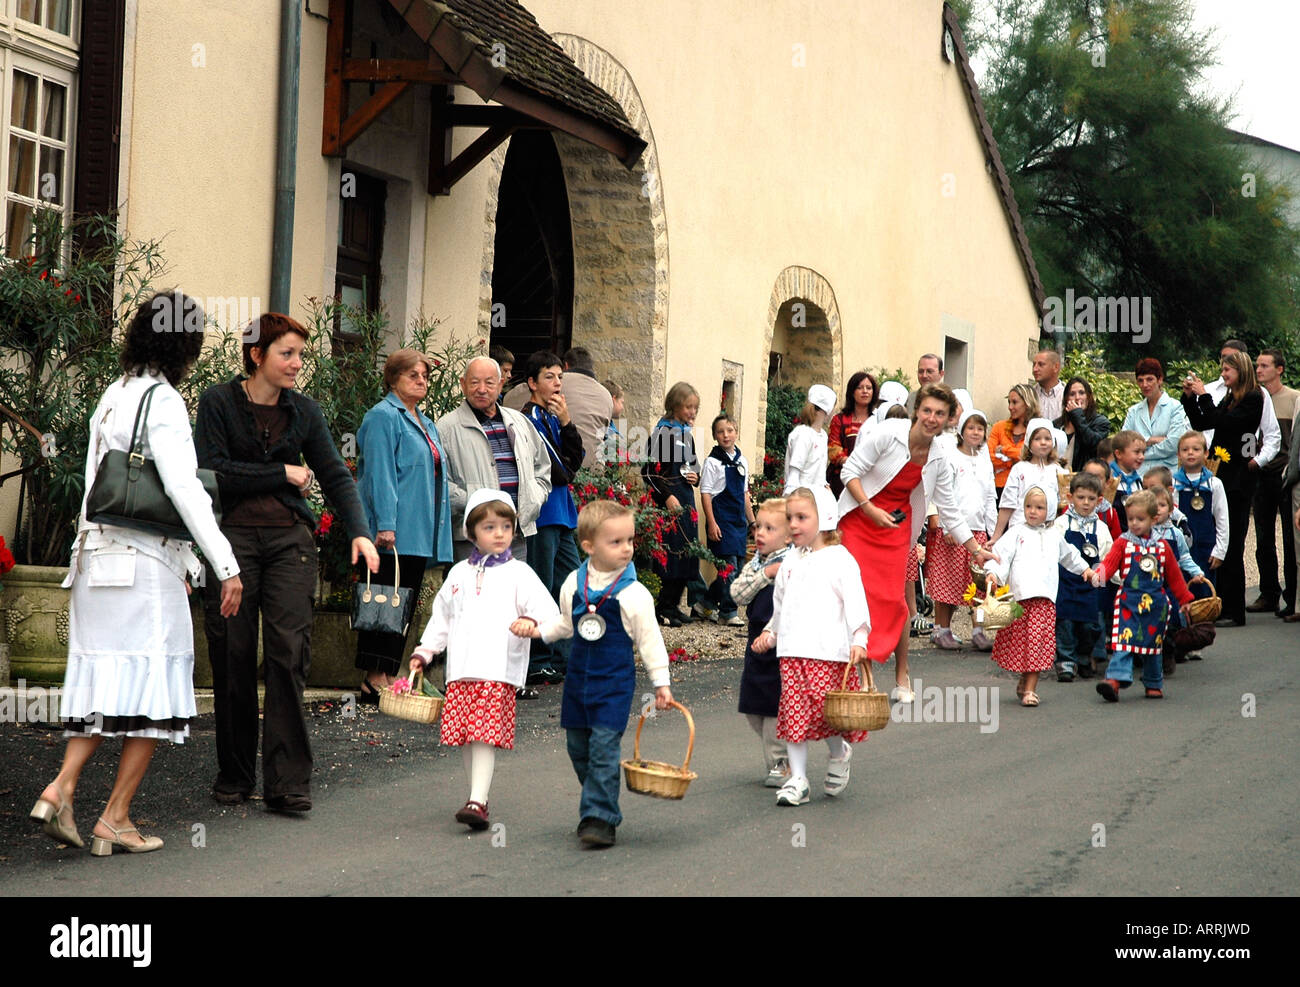 Children parade in the annual wine festival, or biou, in Pupillin, a winemaking village in France's Jura region Stock Photo